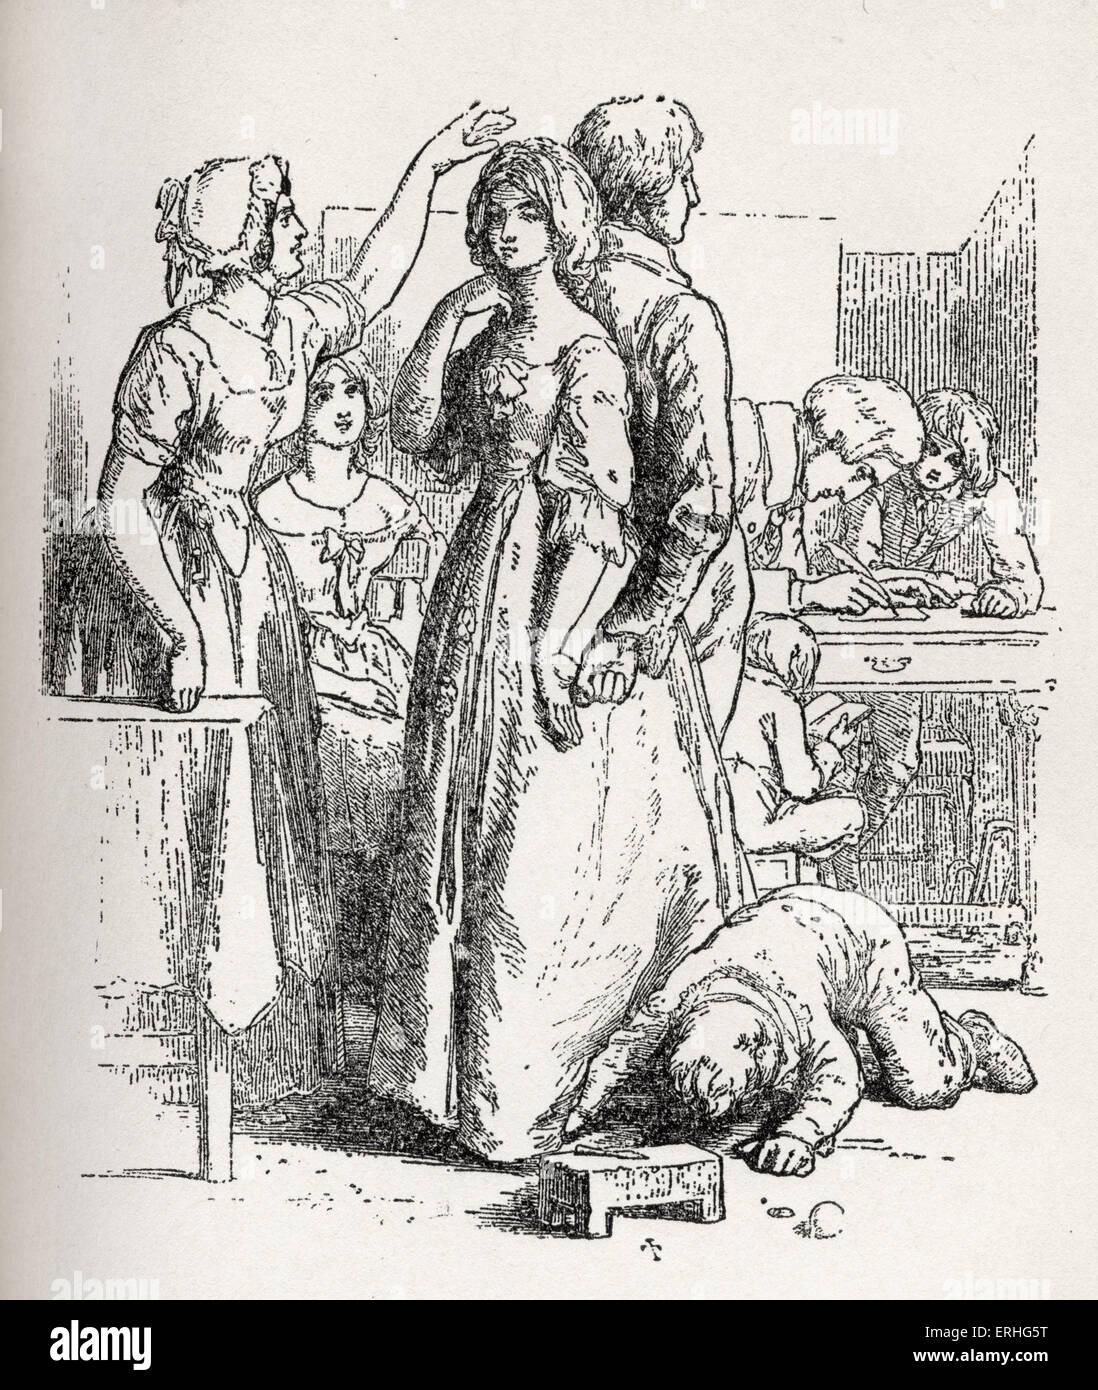 'The Vicar of Wakefield' - illustration from the book by Oliver Goldsmith.  Caption reads: 'then the - Stock Image